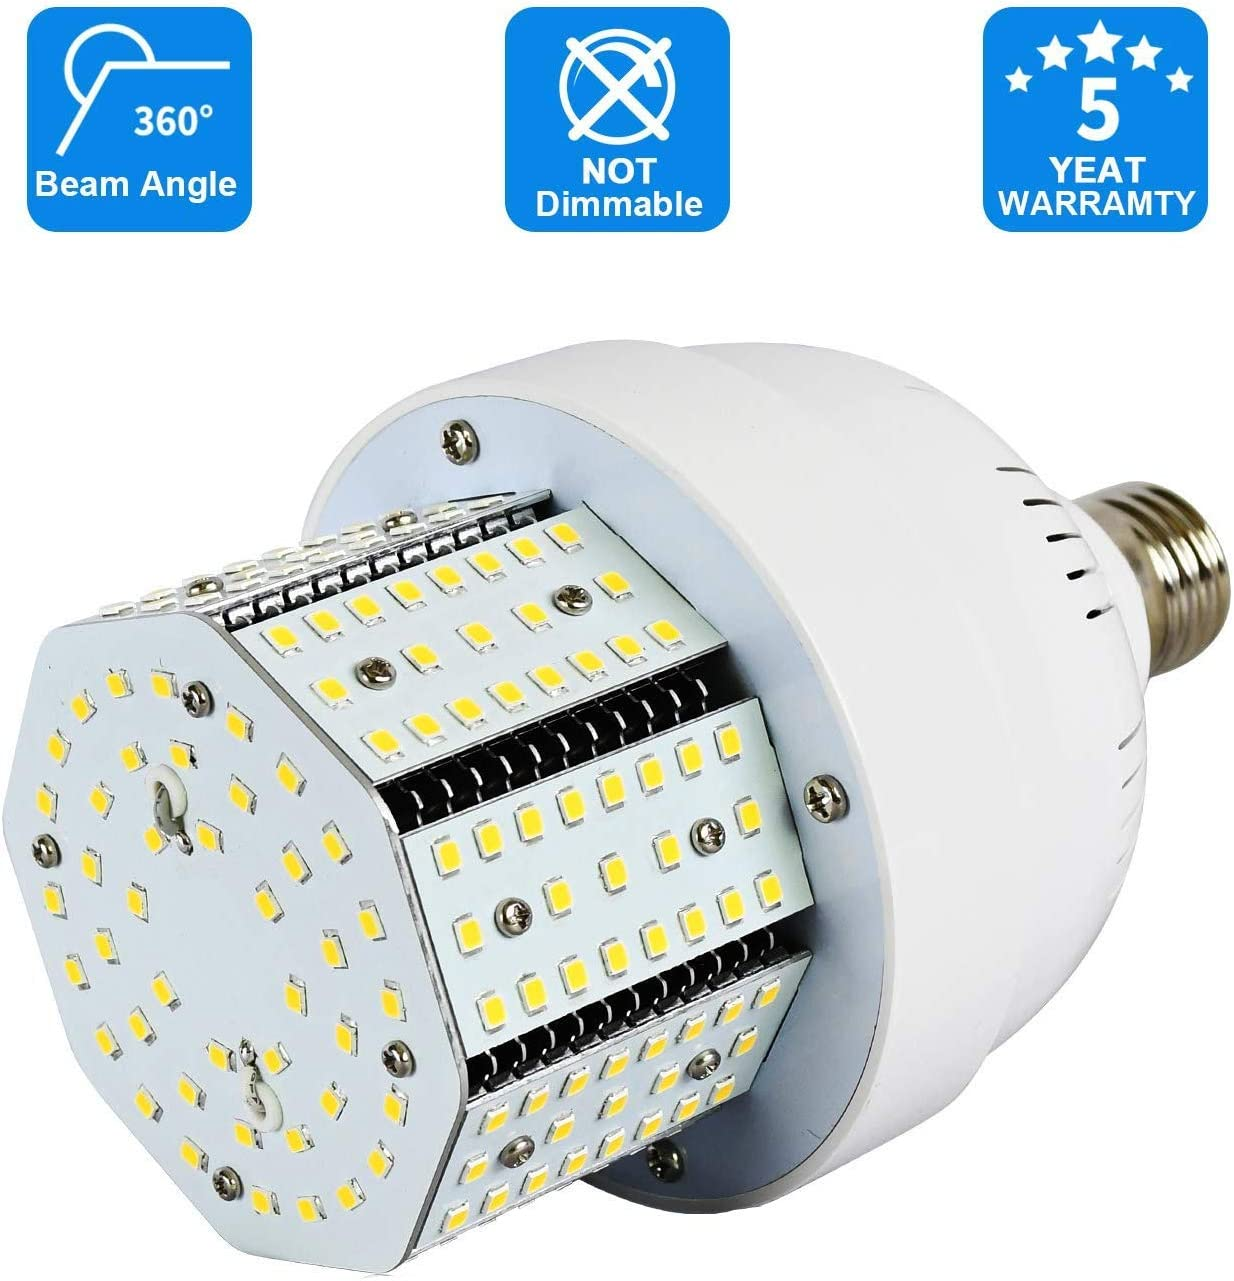 Corn Cob Bulb 5000K Daylight Light for for Indoor Outdoor Garage Factory Retrofit Warehouse Barn Backyard High Bay Stadium Track,AC100-277V Input Lawind 135W LED Corn Light Bulb E39 135W